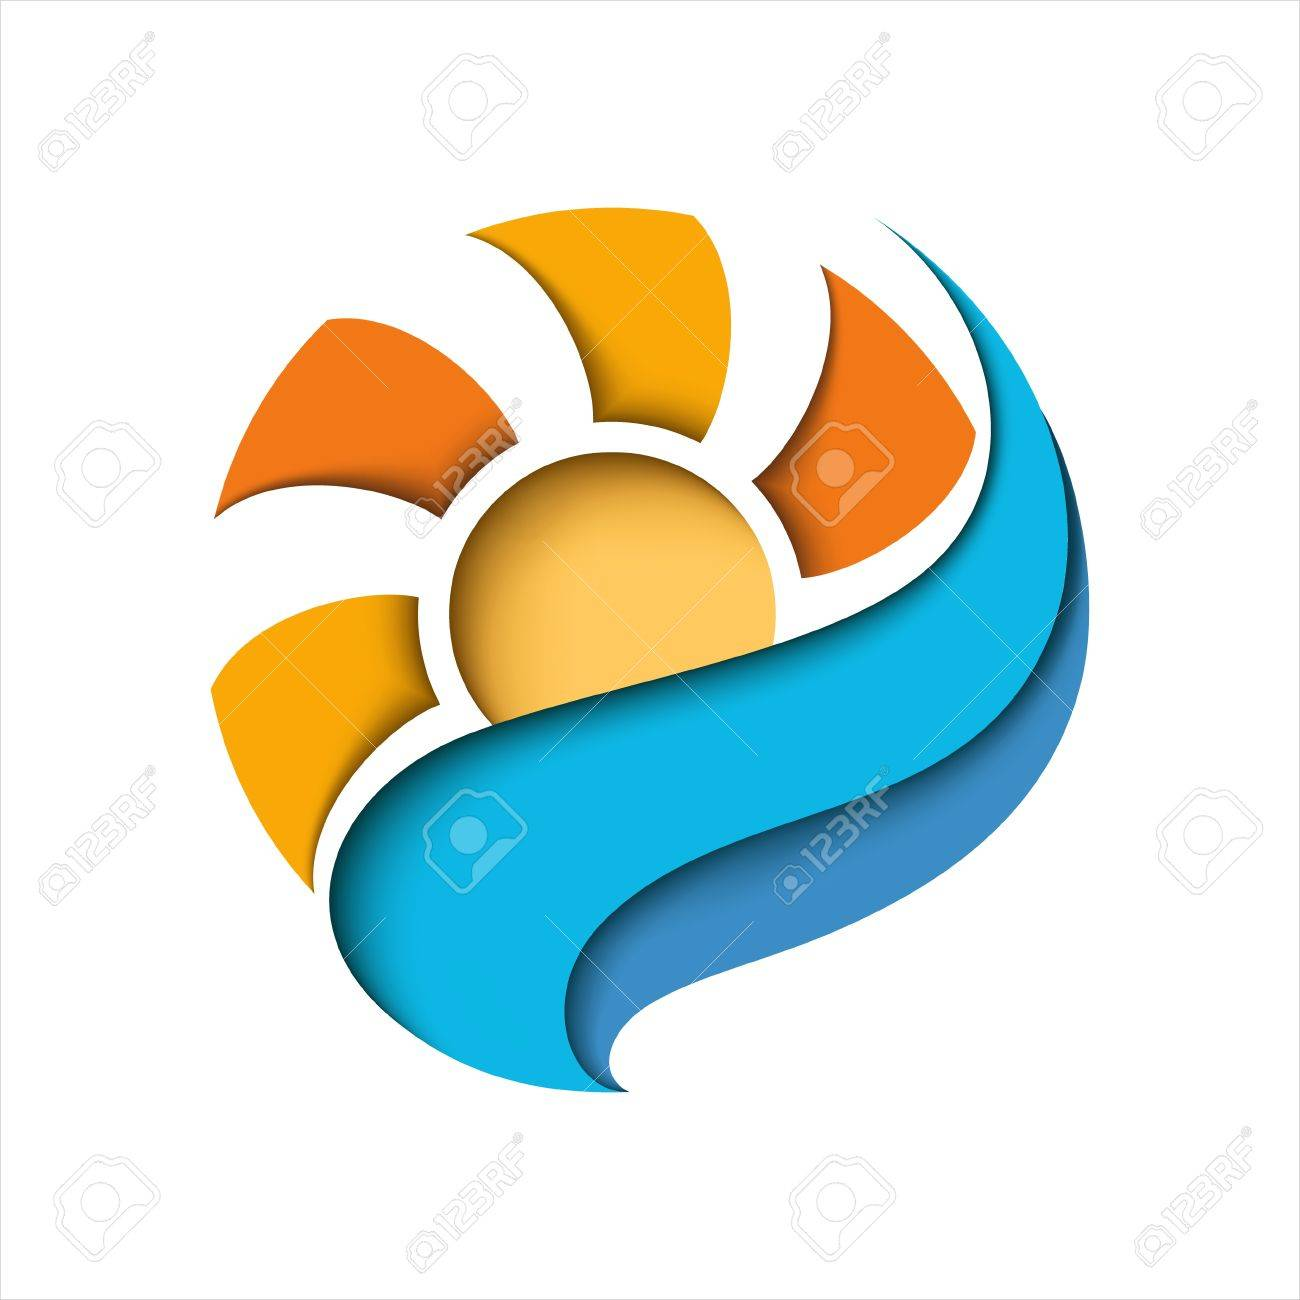 Abstract sun in a blue cloud  Stylized illustration Stock Vector - 14317267